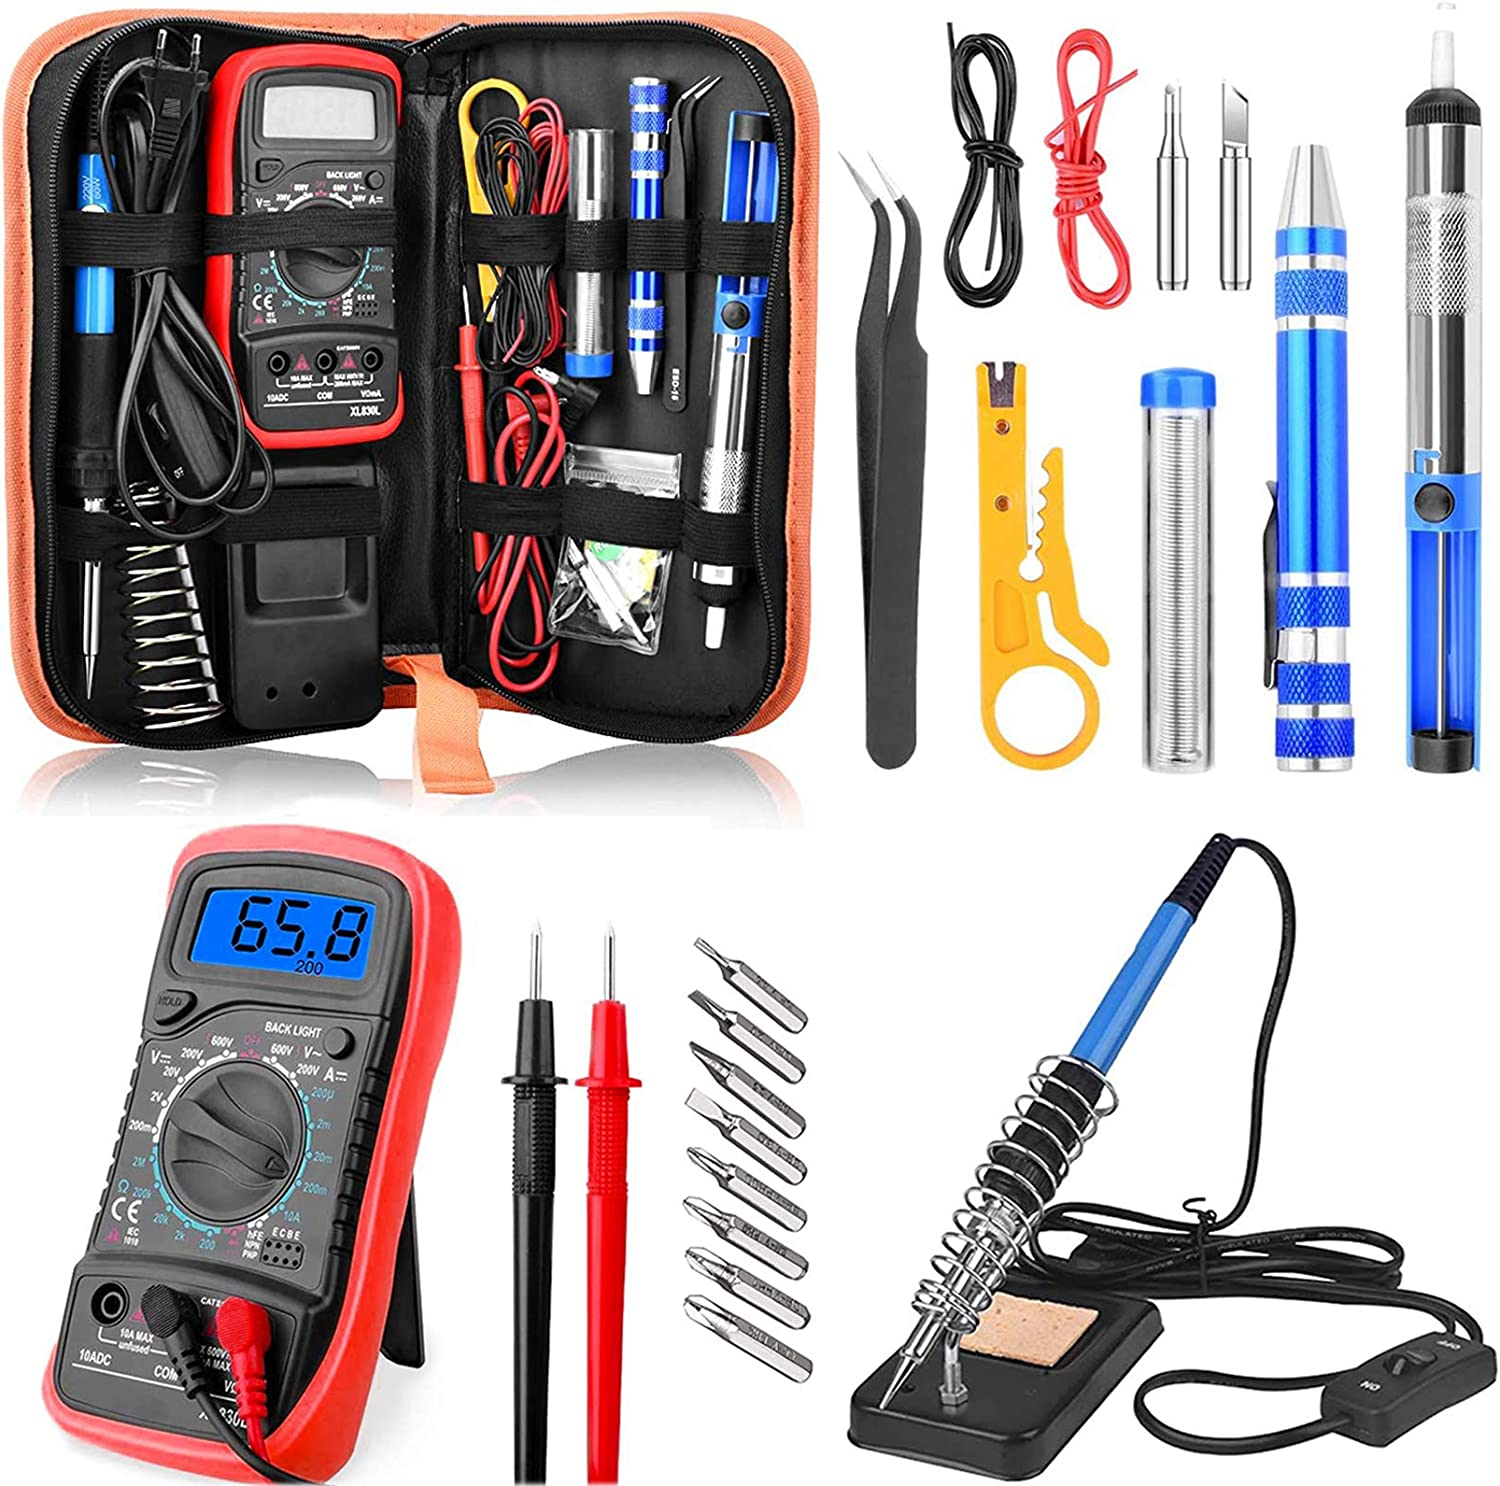 Easy-to-use ETEPON Soldering Iron Max 79% OFF Kit 60W Adjustable Wood Burni Temperature